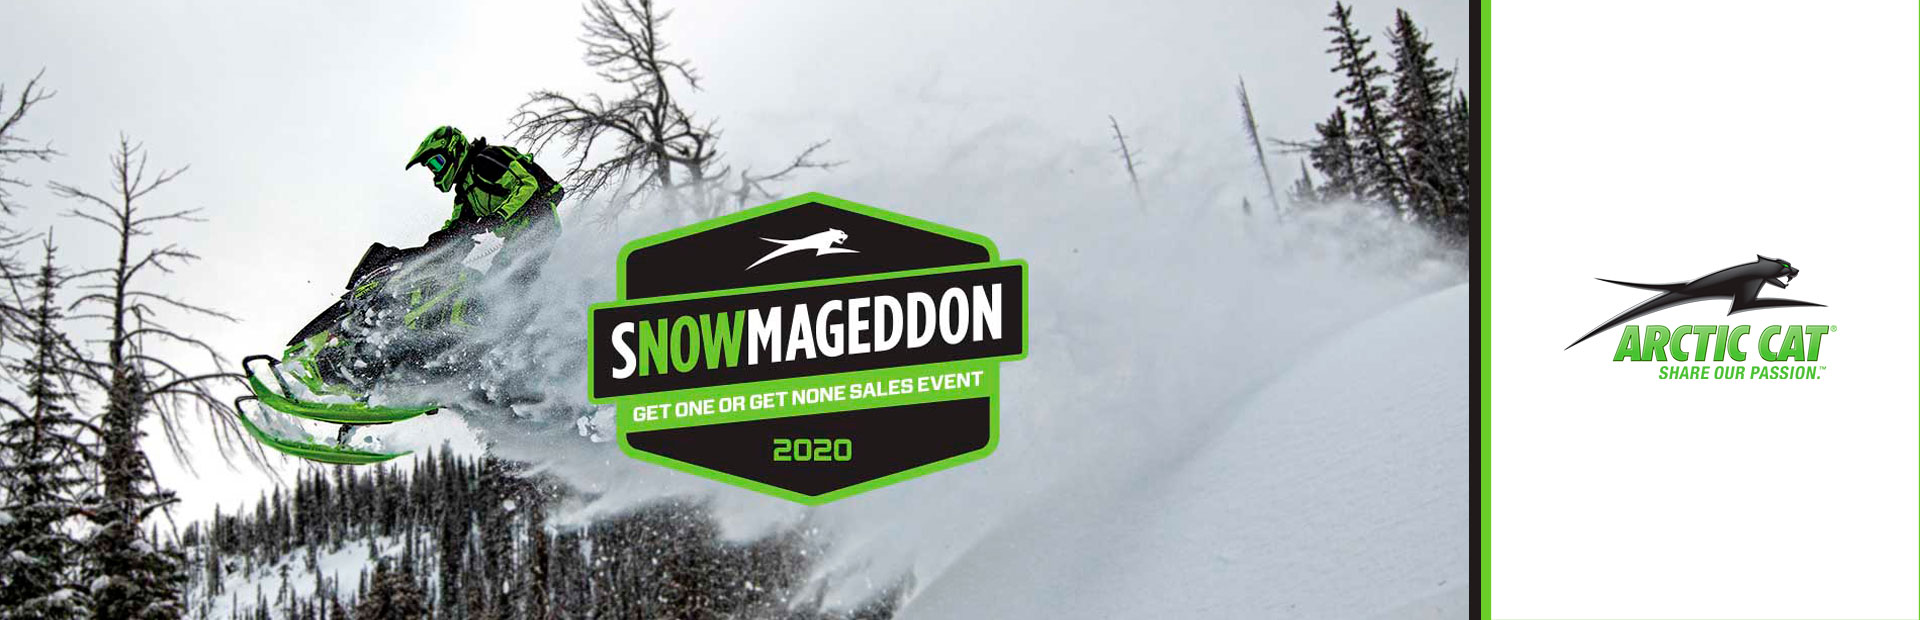 Arctic Cat: Snowmageddon Get One or Get None Sales Event